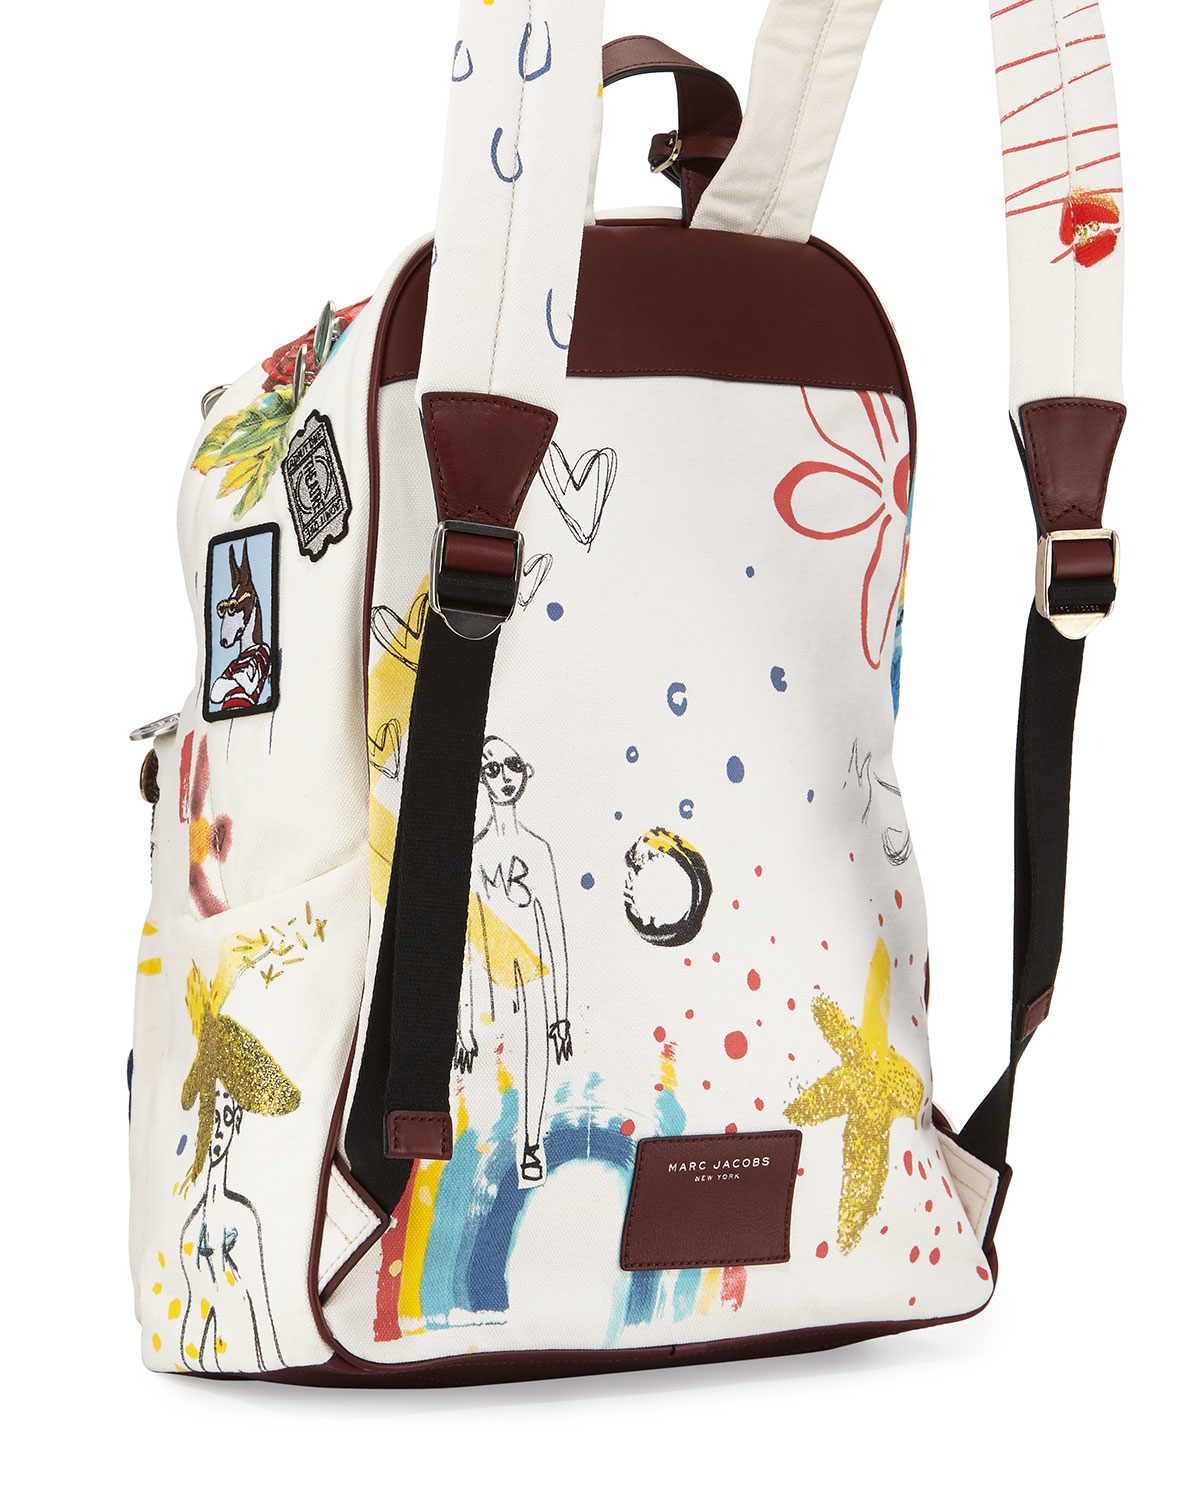 Marc jacobs Collage Canvas Backpack in Multicolor (ECRU MULTI) | Lyst